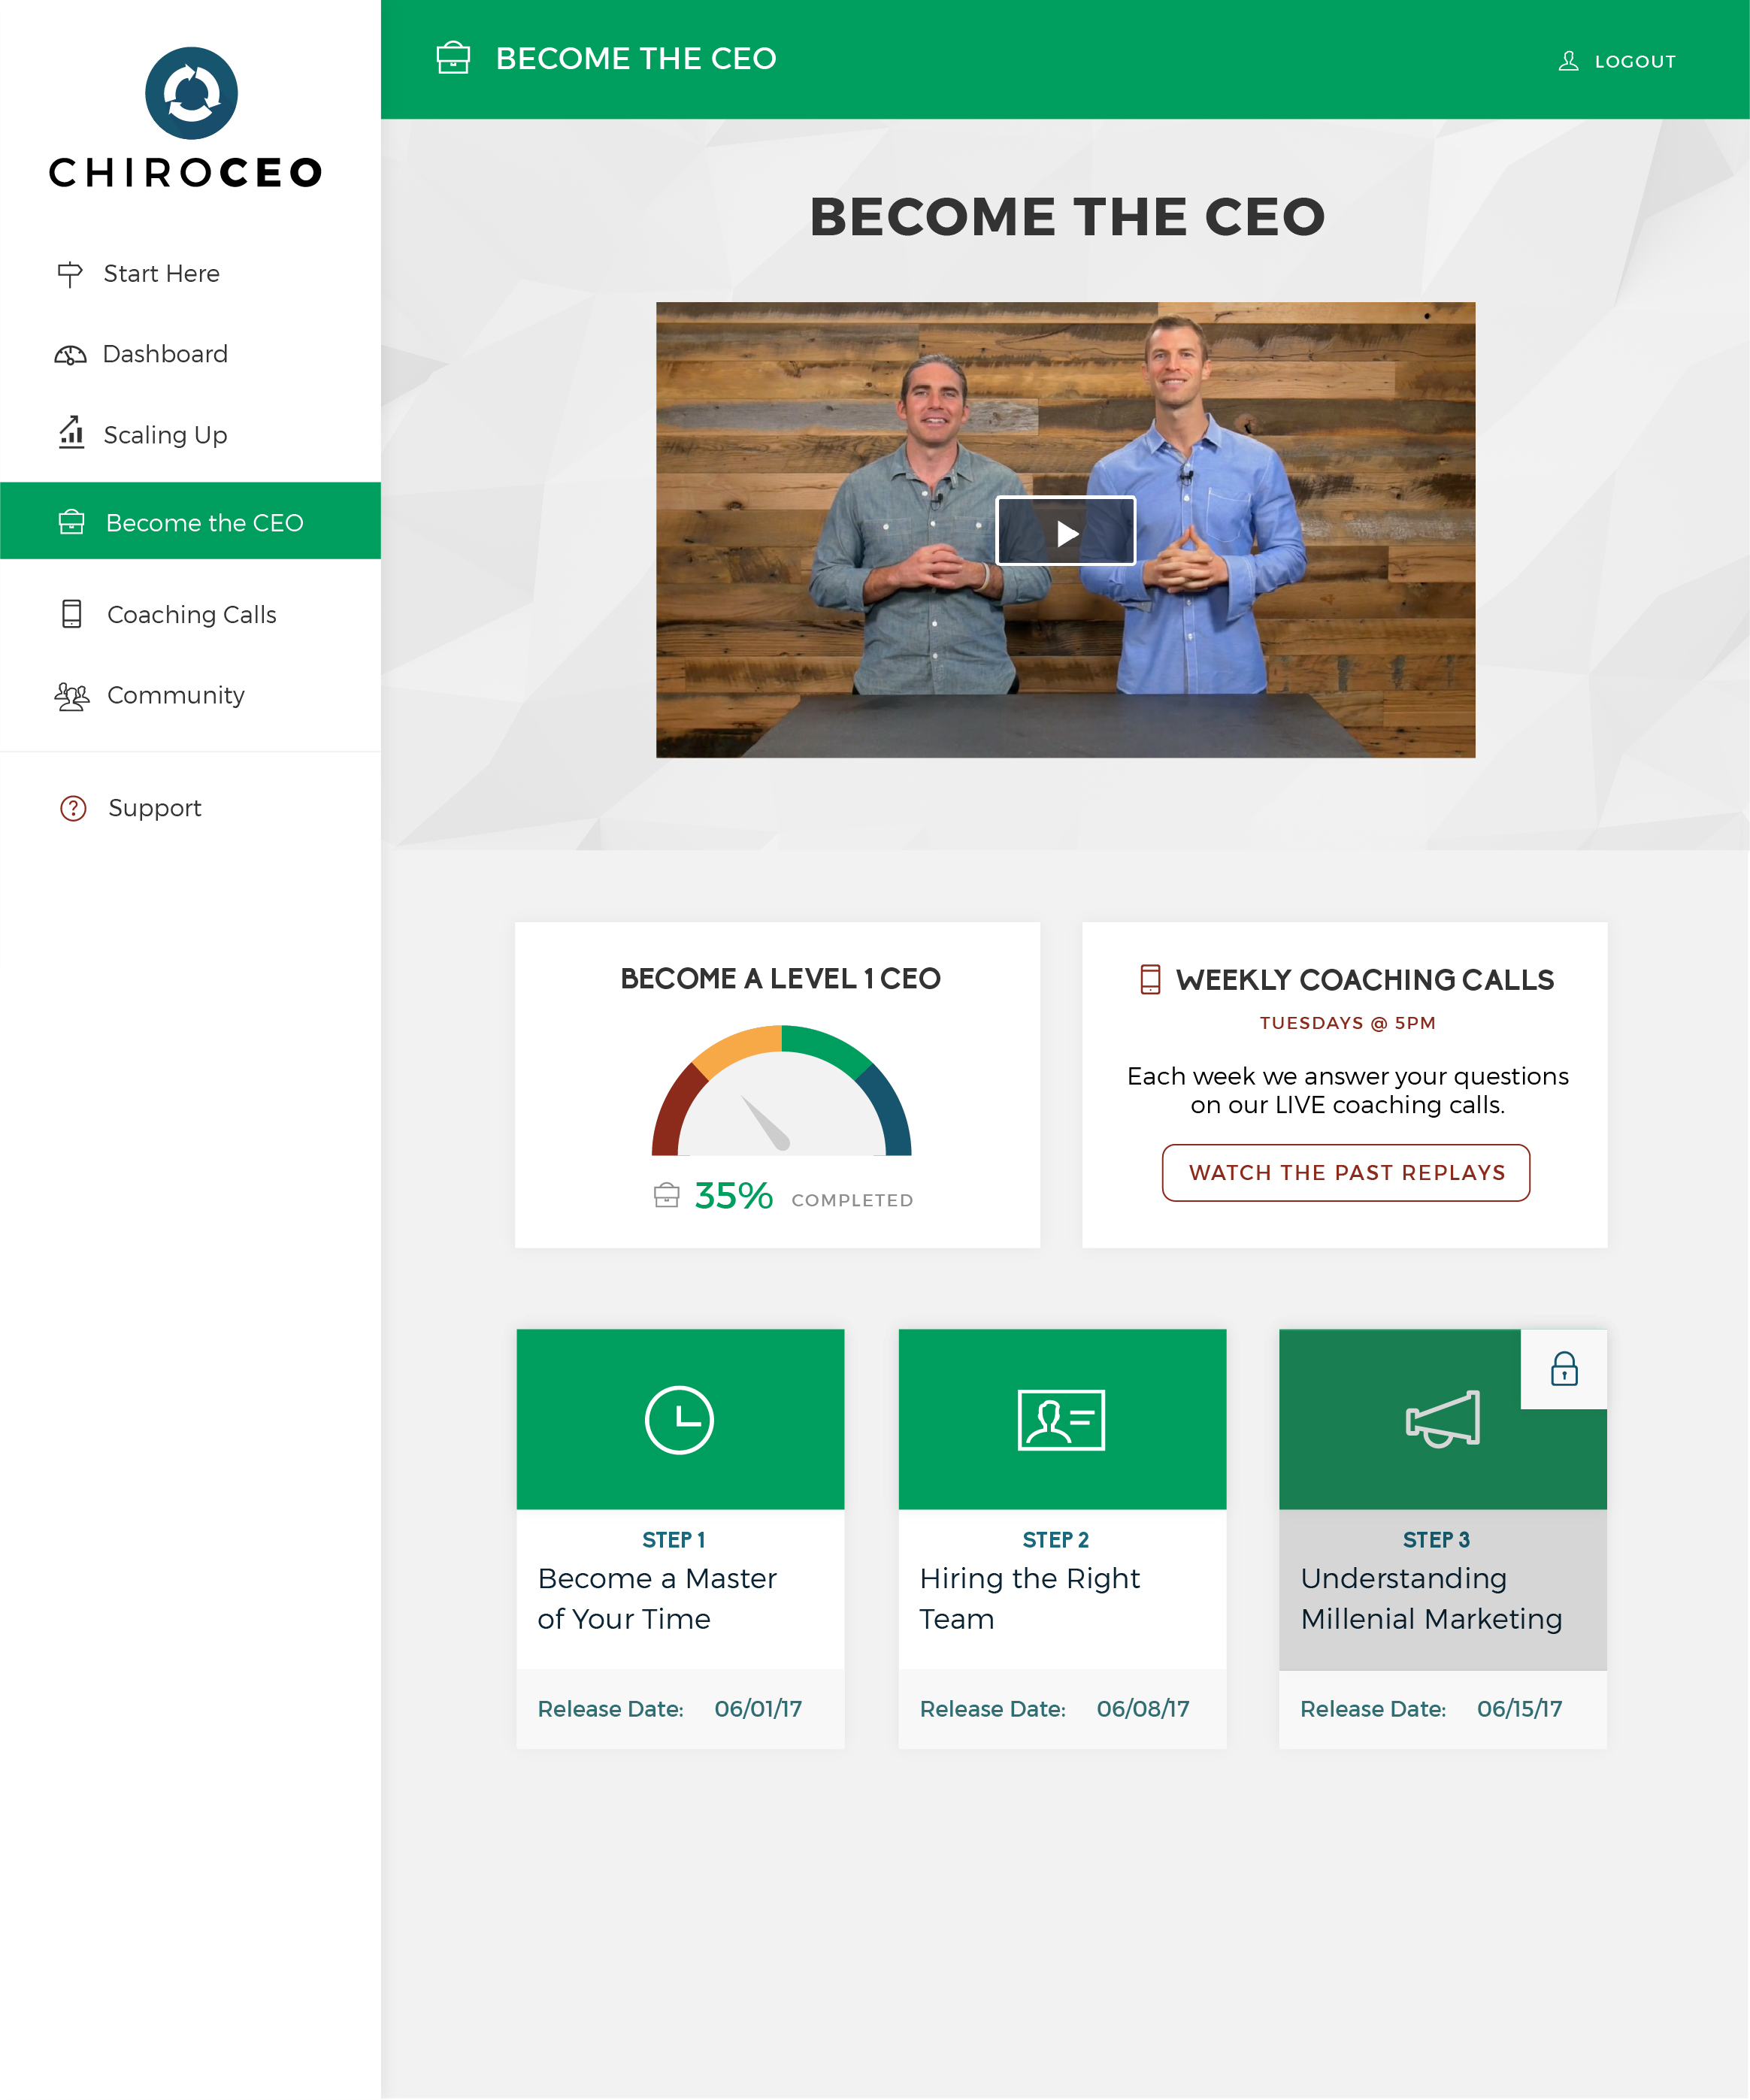 chiroceo-become-the-ceo-dashboard